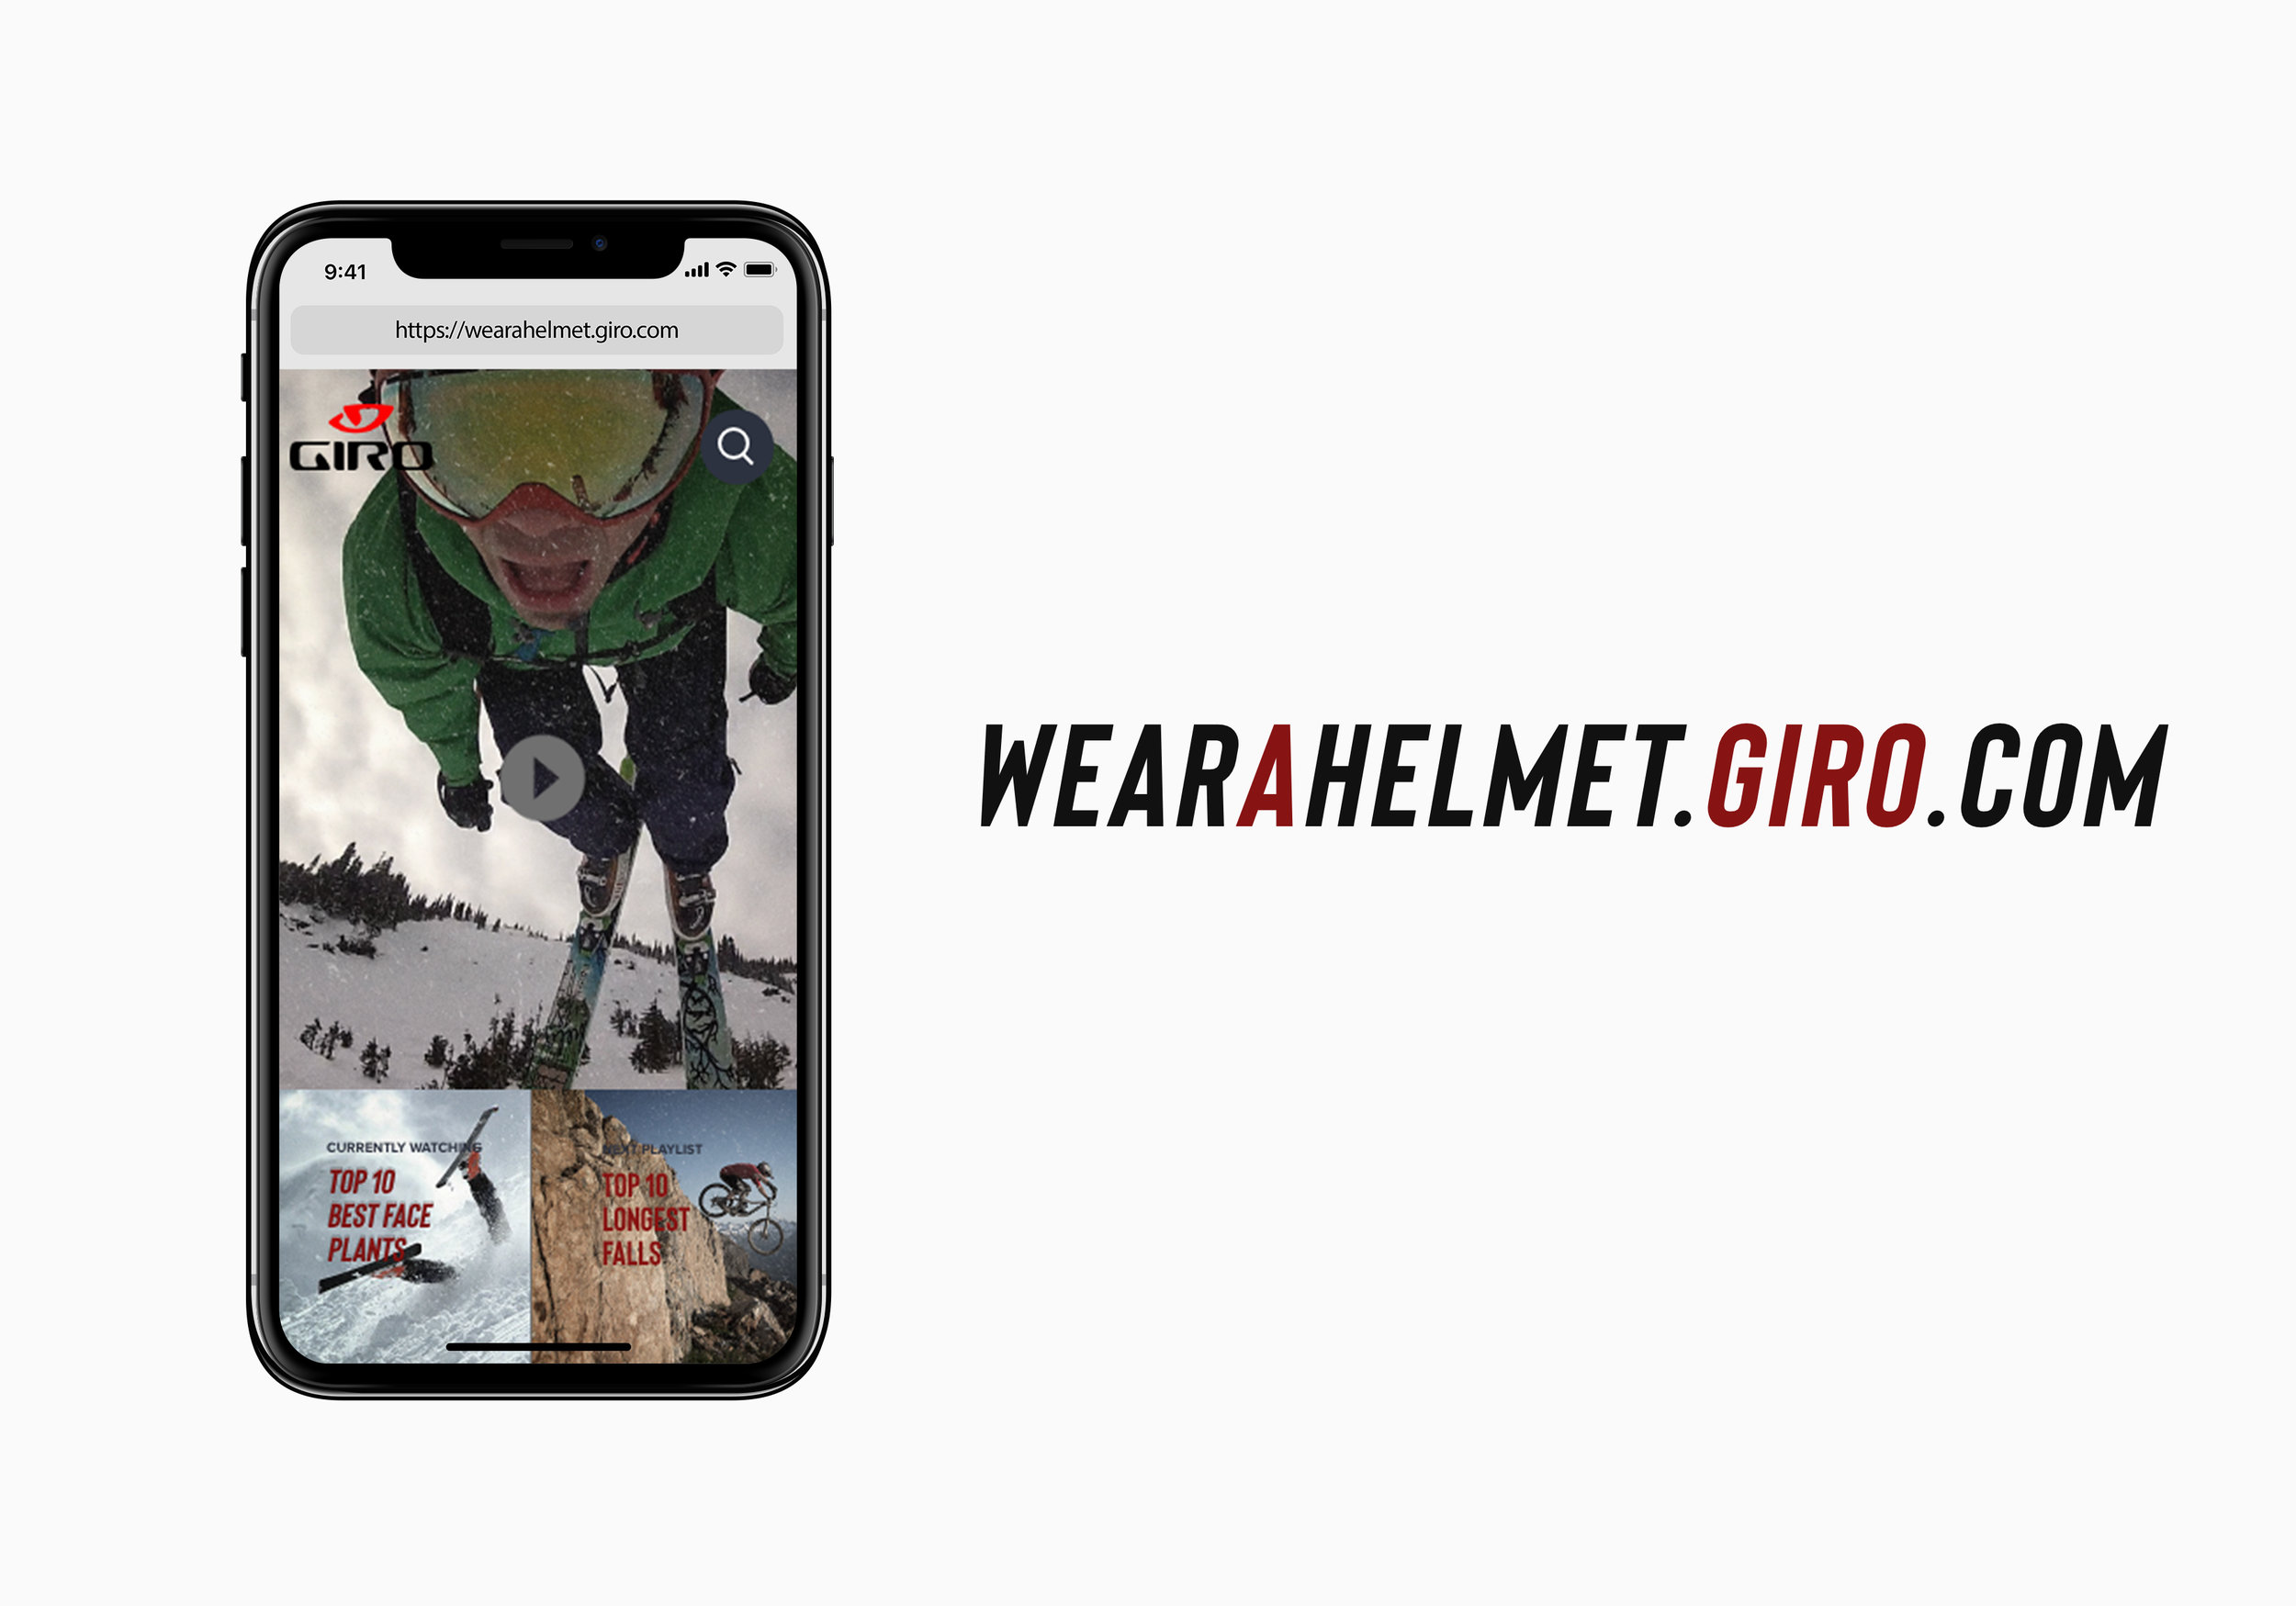 WearAHelmet.Giro.com has all the best crashes because we're terrible human beings who like to watch people crash.